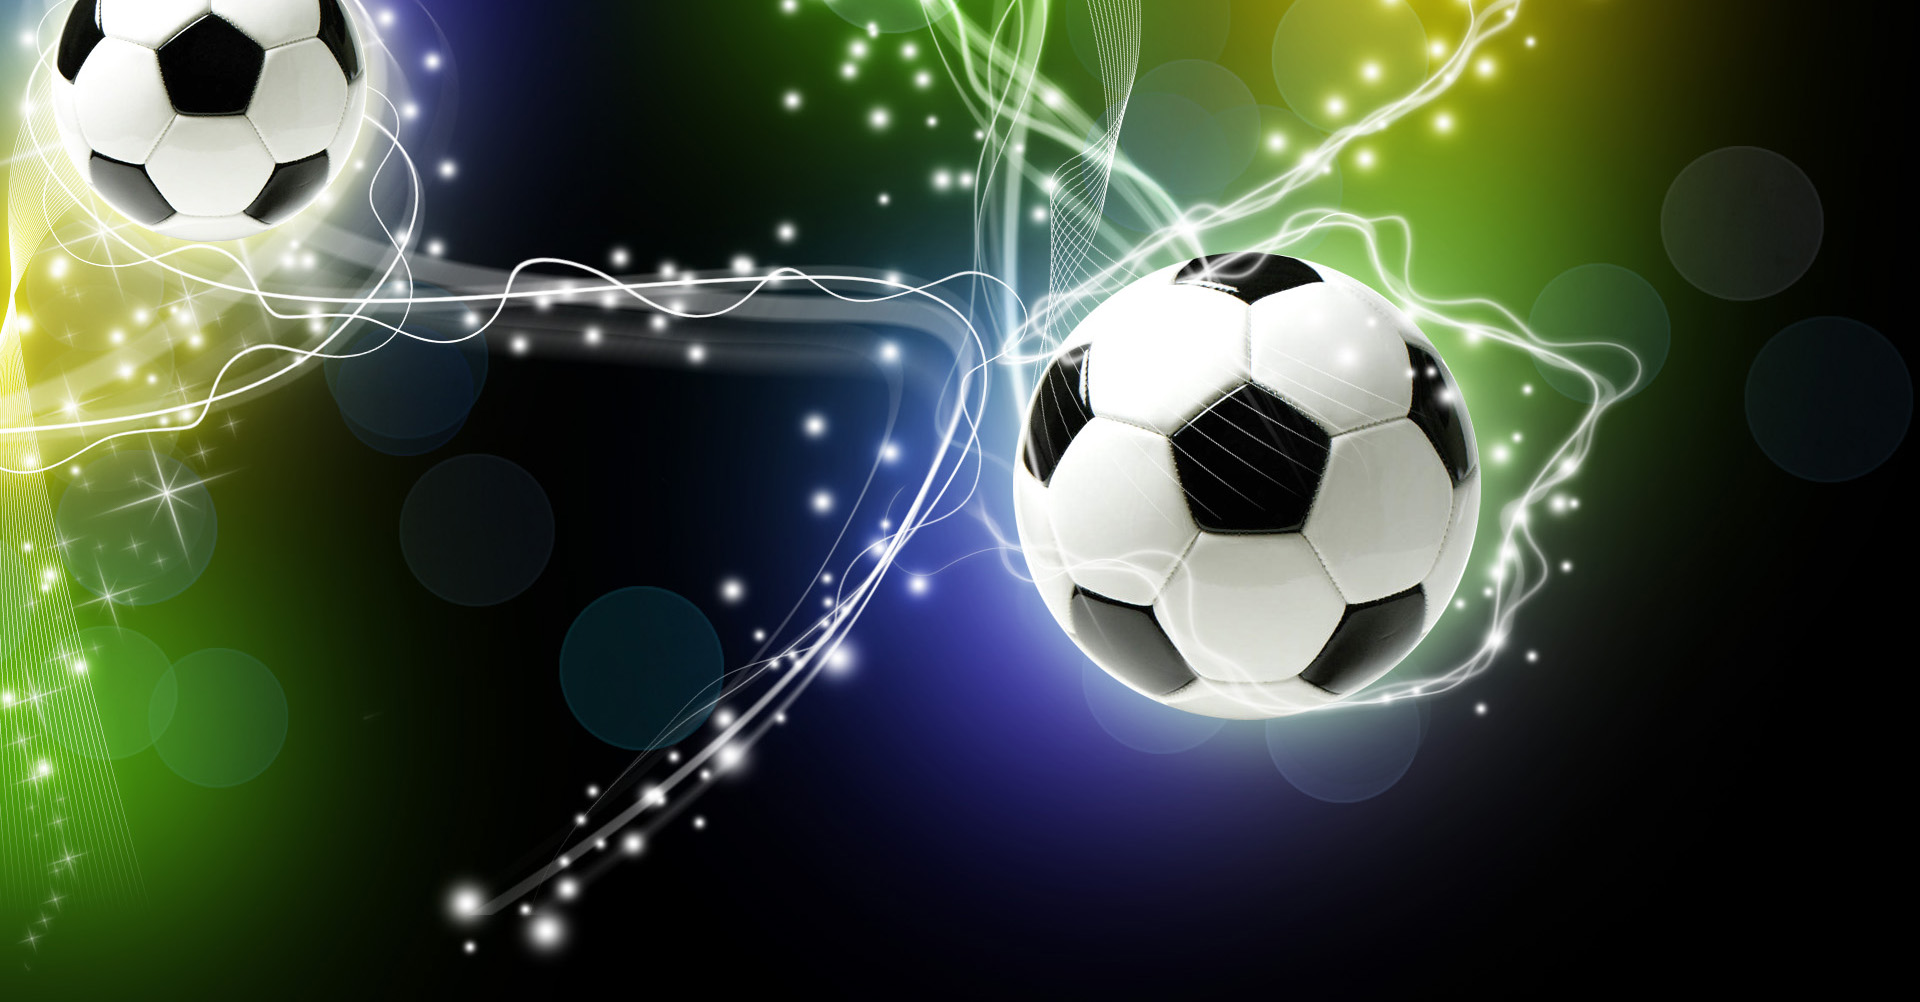 Cute soccer wallpapers wallpapersafari - Cute asian cartoon wallpaper ...